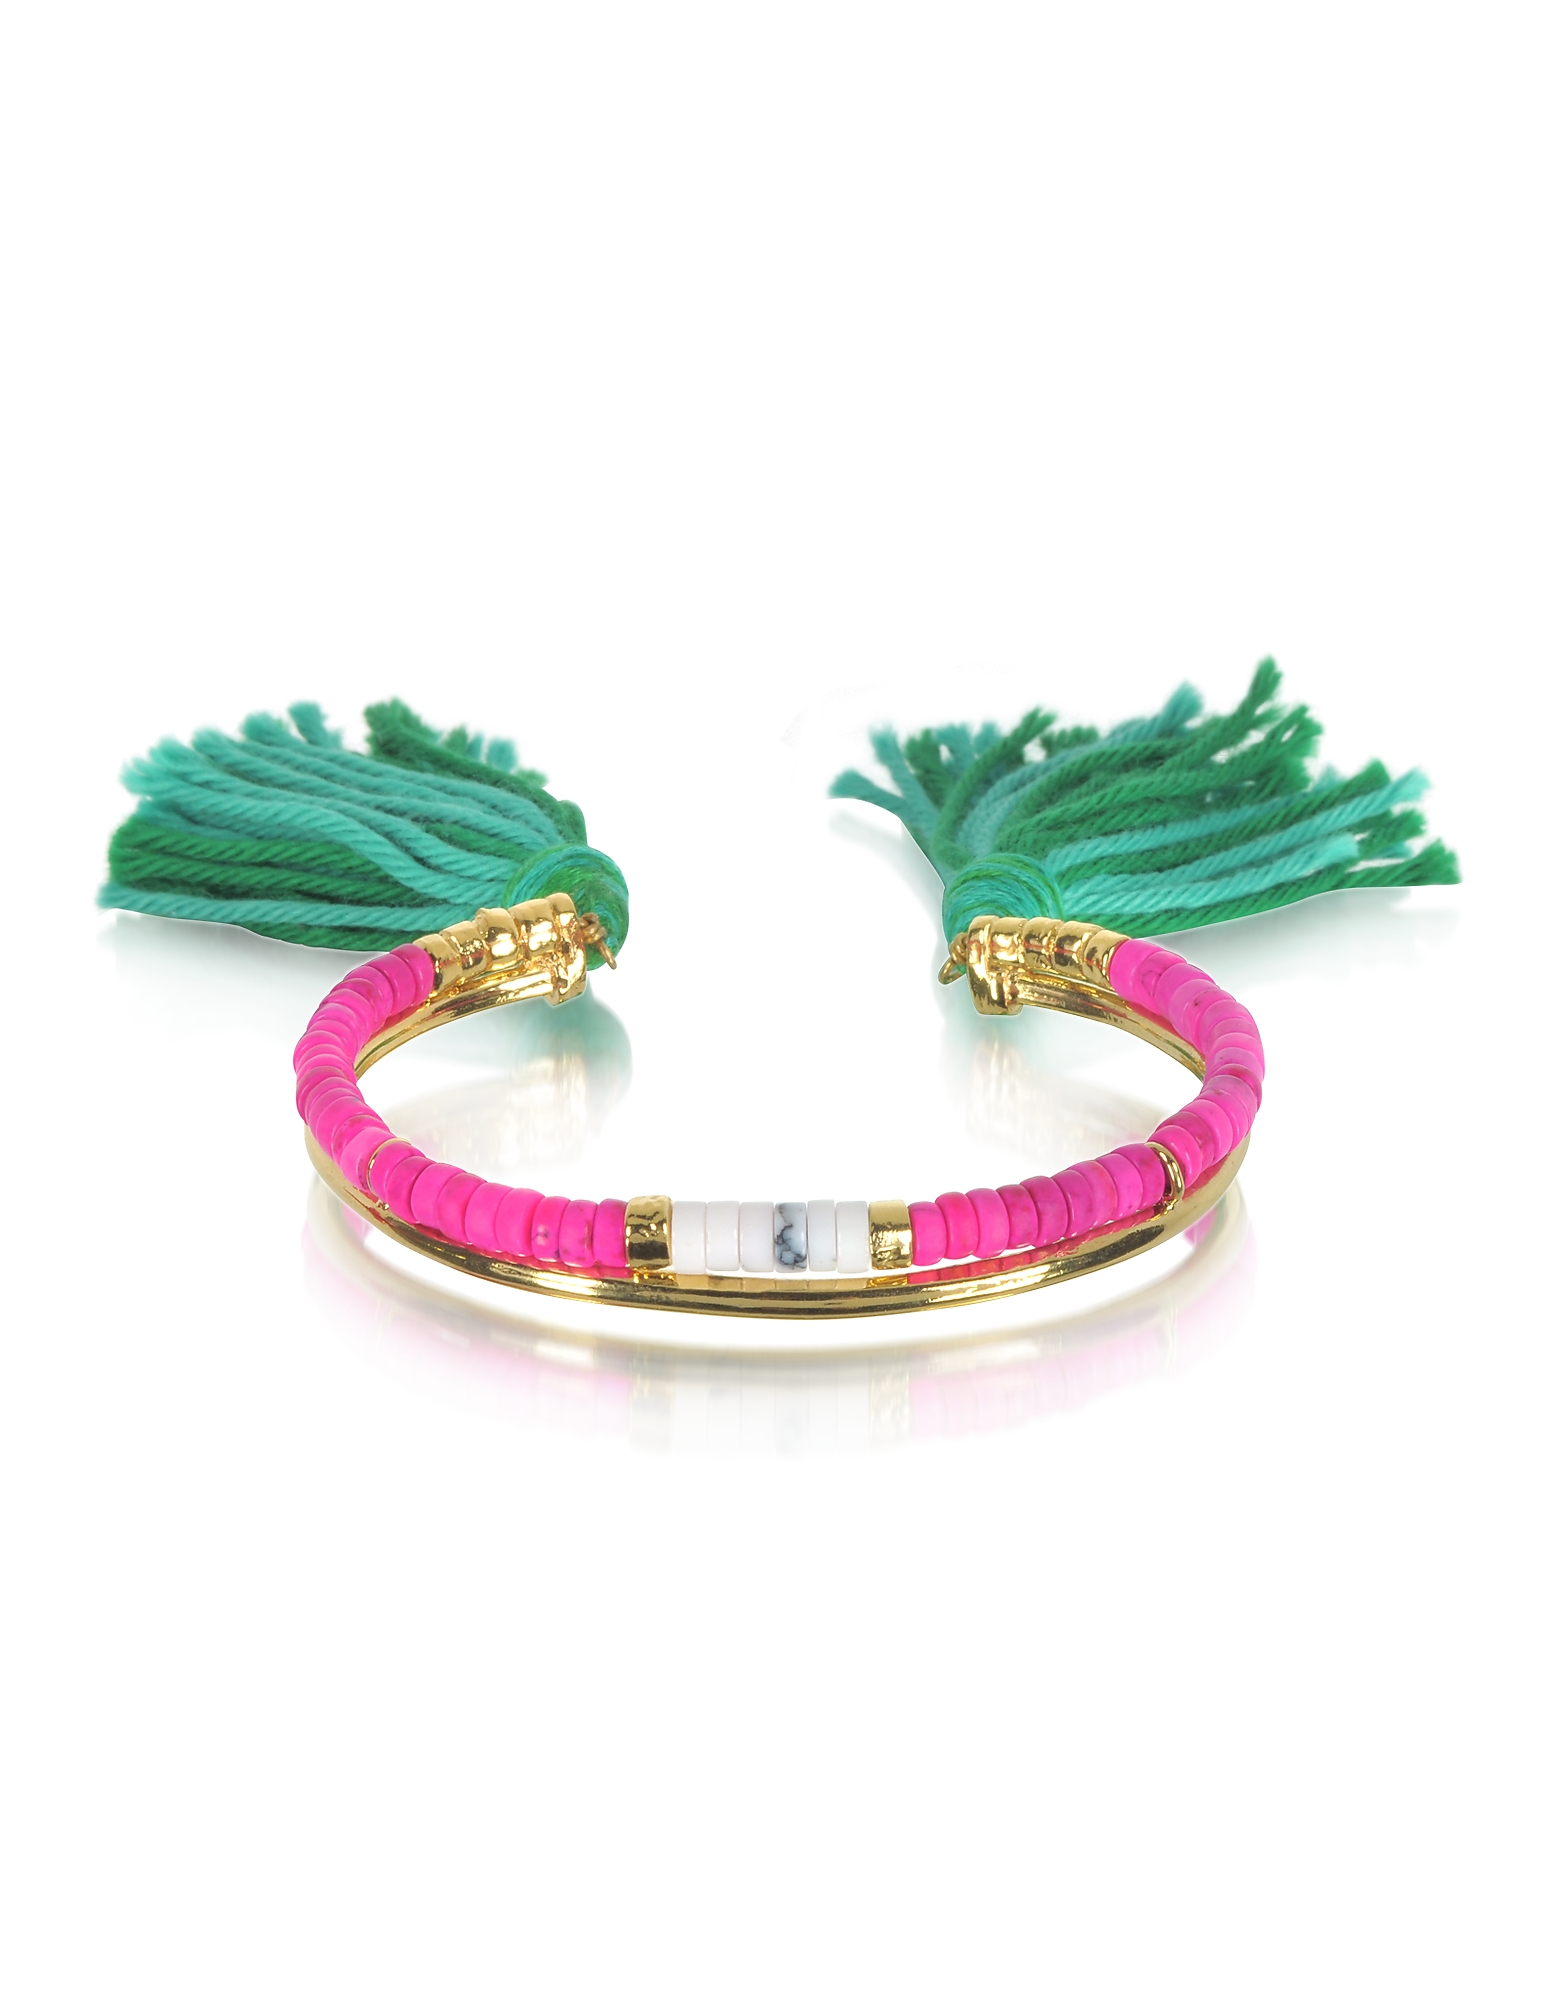 Aurelie Bidermann Bracelets, 18K Gold-plated and Pink